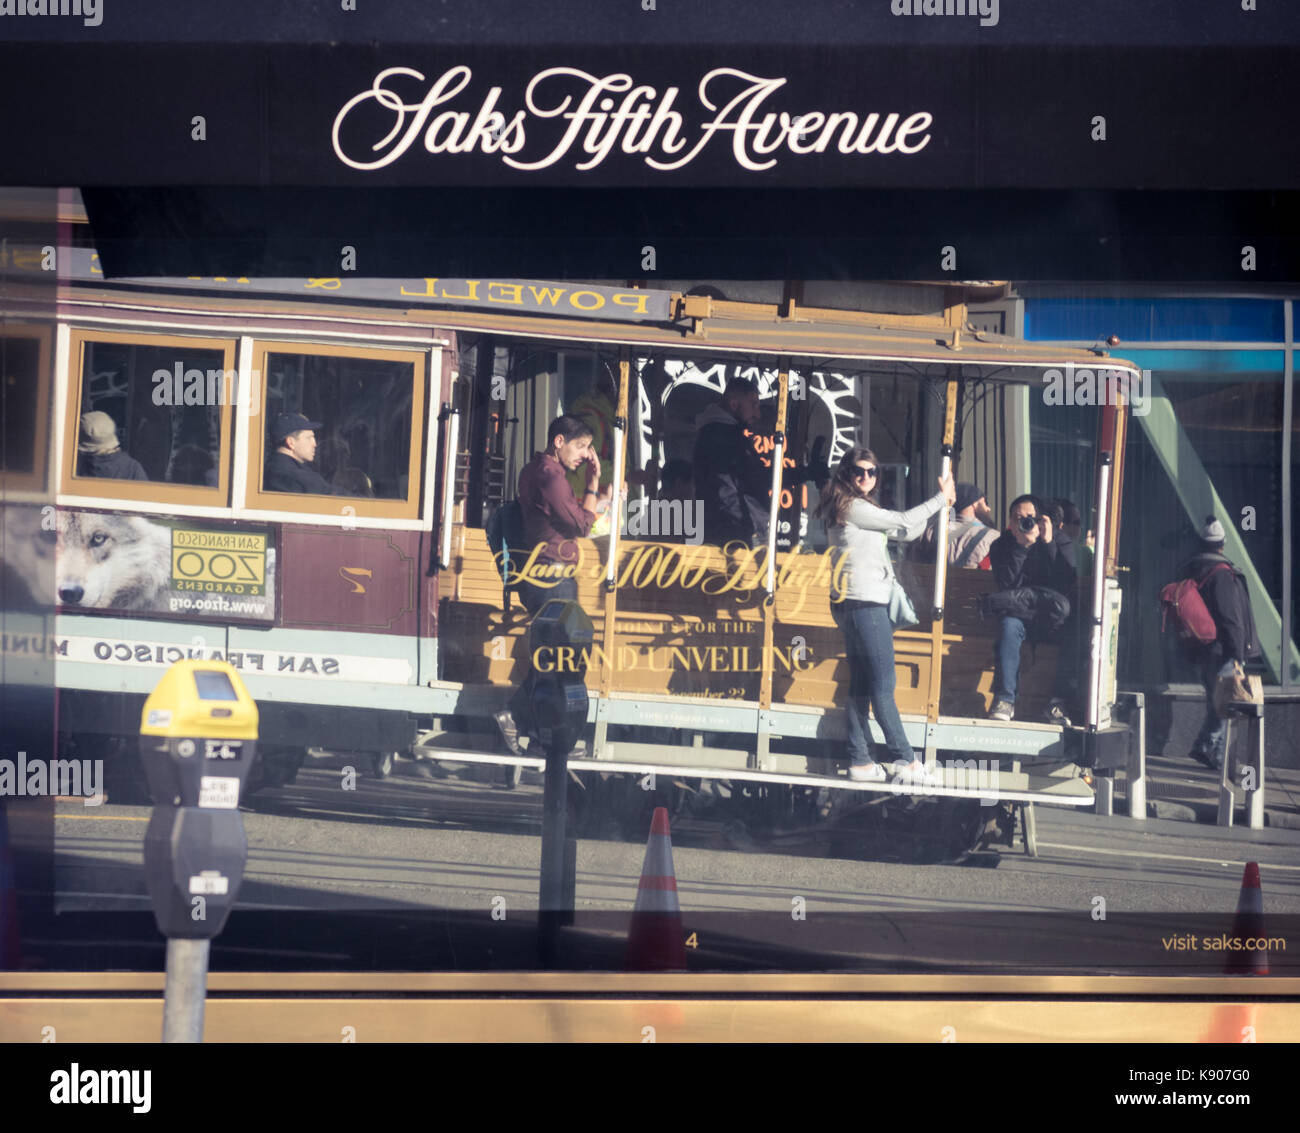 A reflection of a Hyde-Powell street car from the window of the Saks Fifth Avenue store at Union Square in San Francisco. - Stock Image